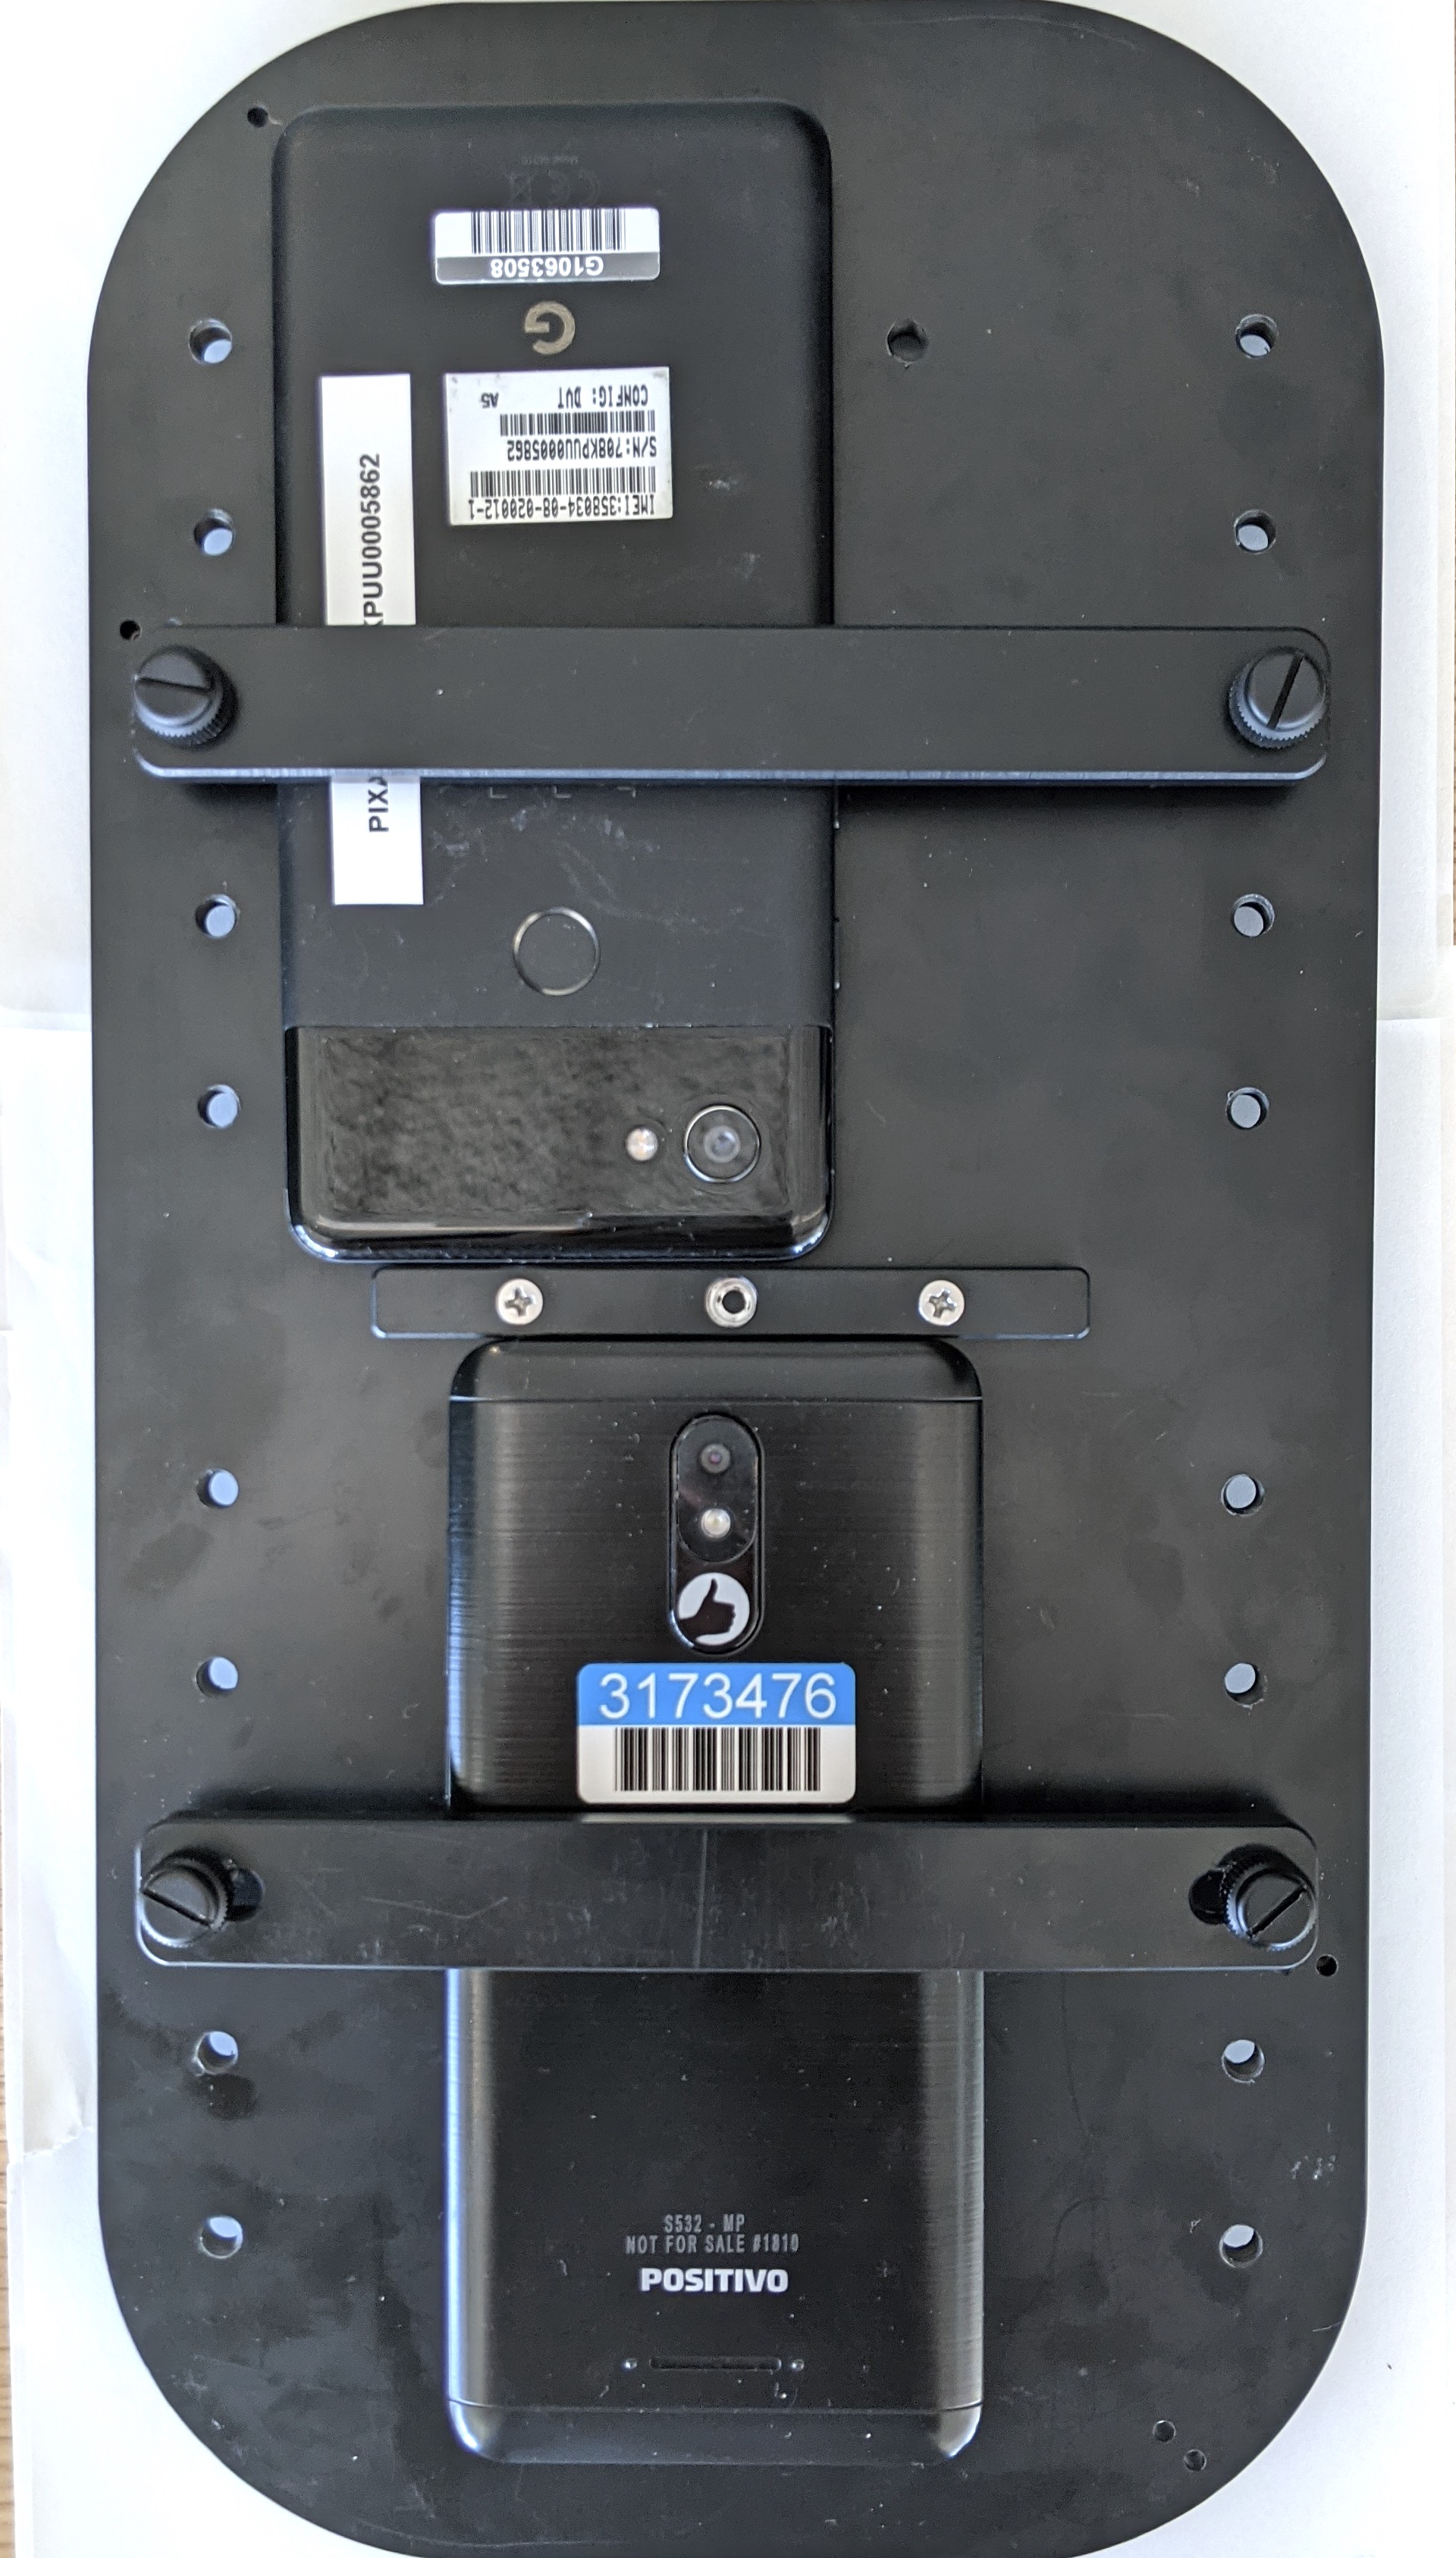 Attaching phone on fixture